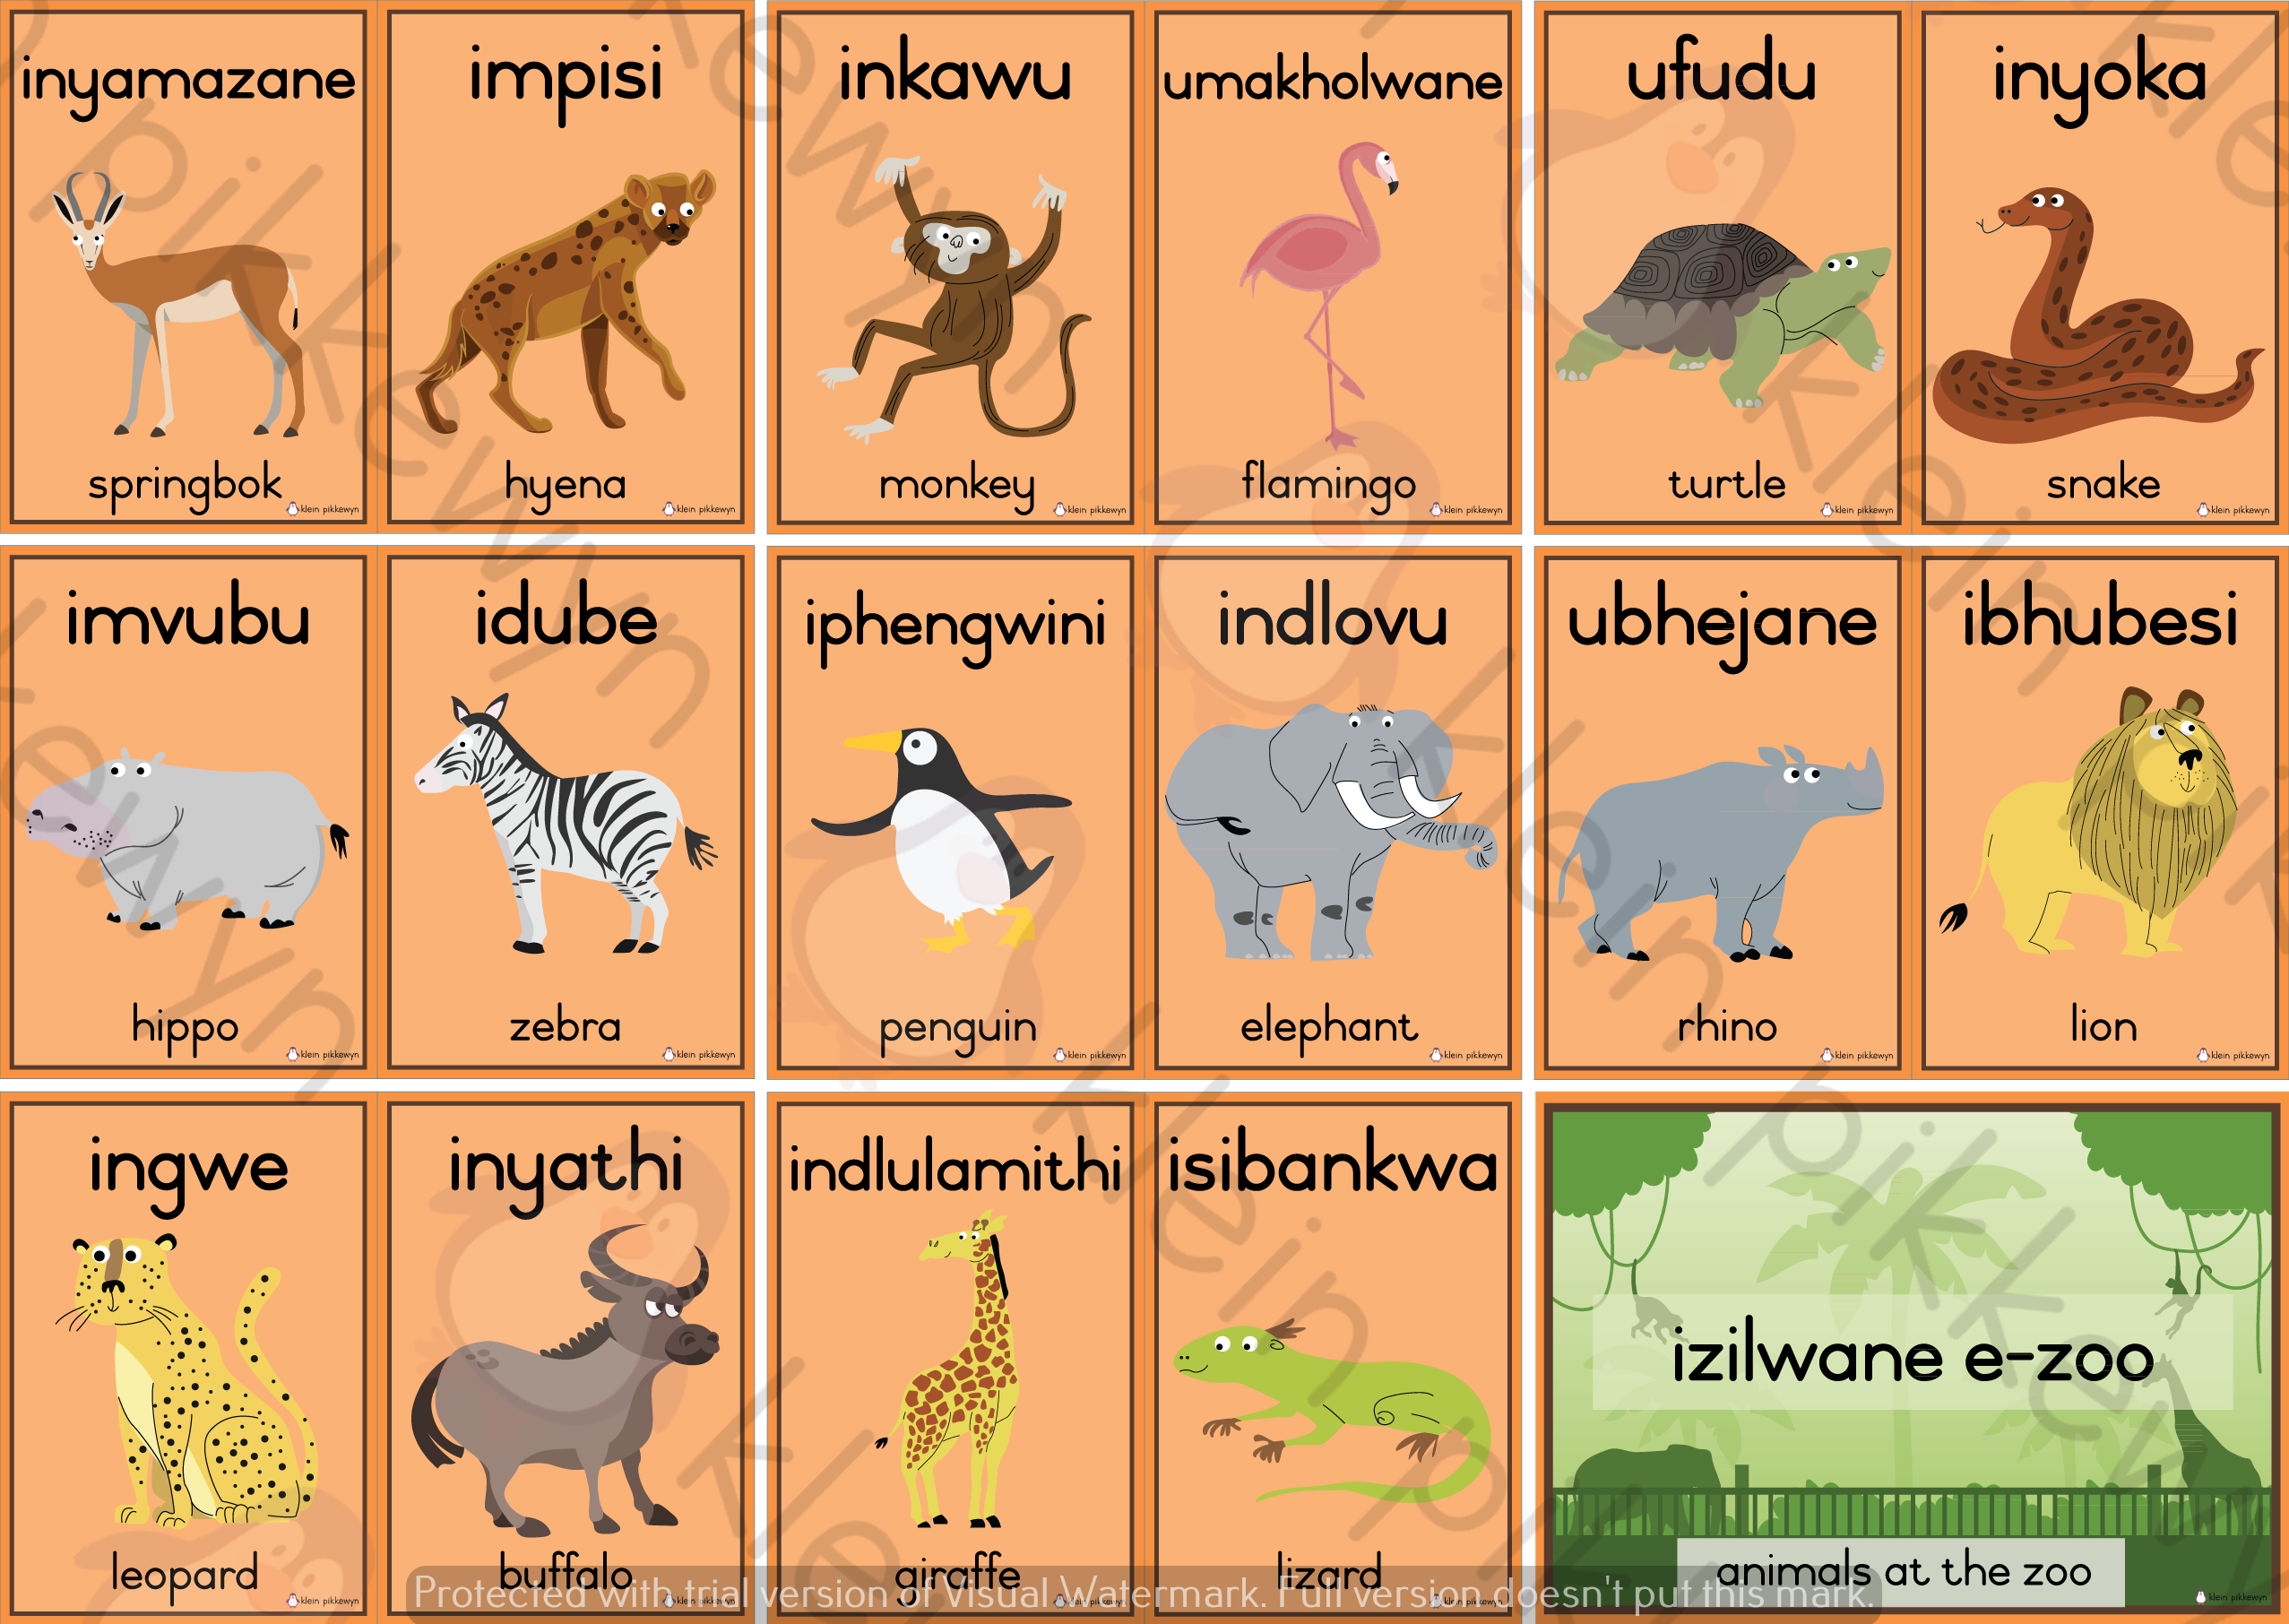 Isizulu Eng Izilwane E Zoo Zoo Animals With Images Zoo Animals Zoo Animals